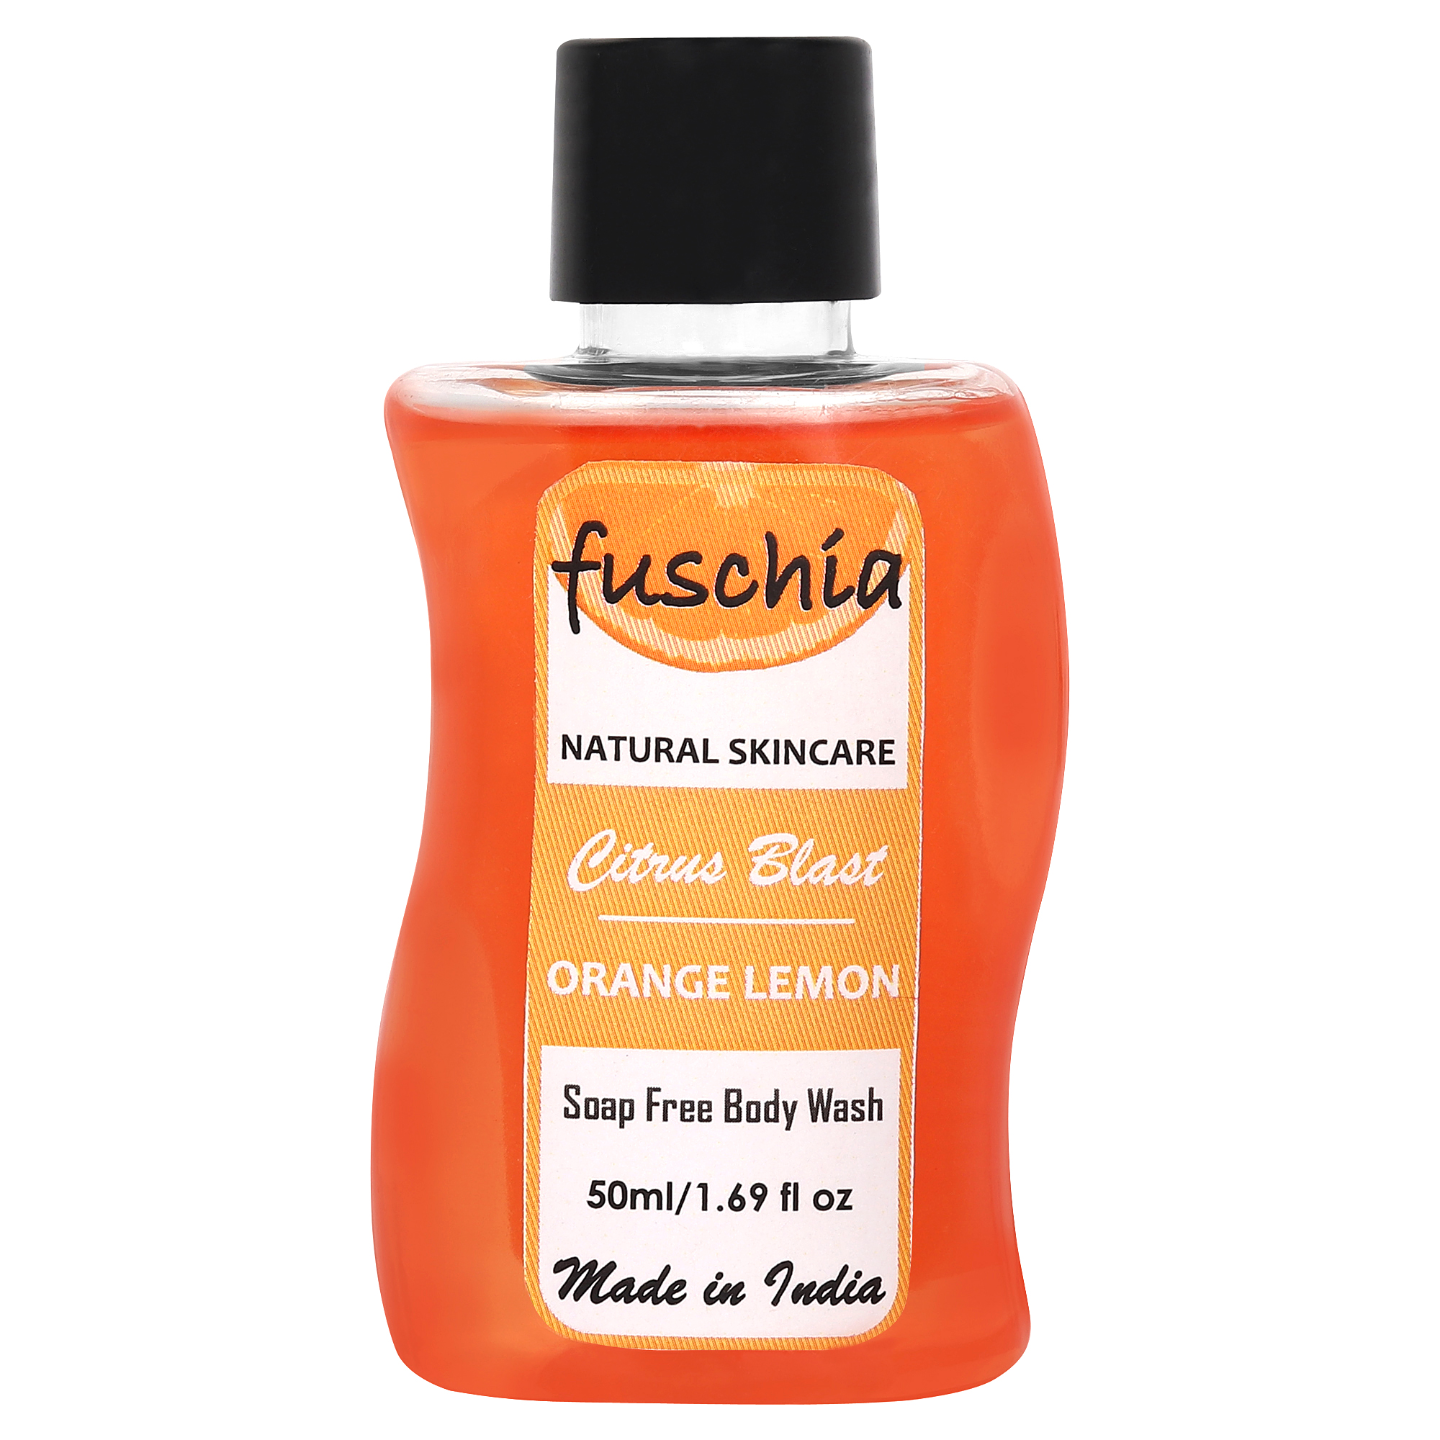 Fuschia Citrus Blast Orange Lemon Soap Free Body Wash - 50ml